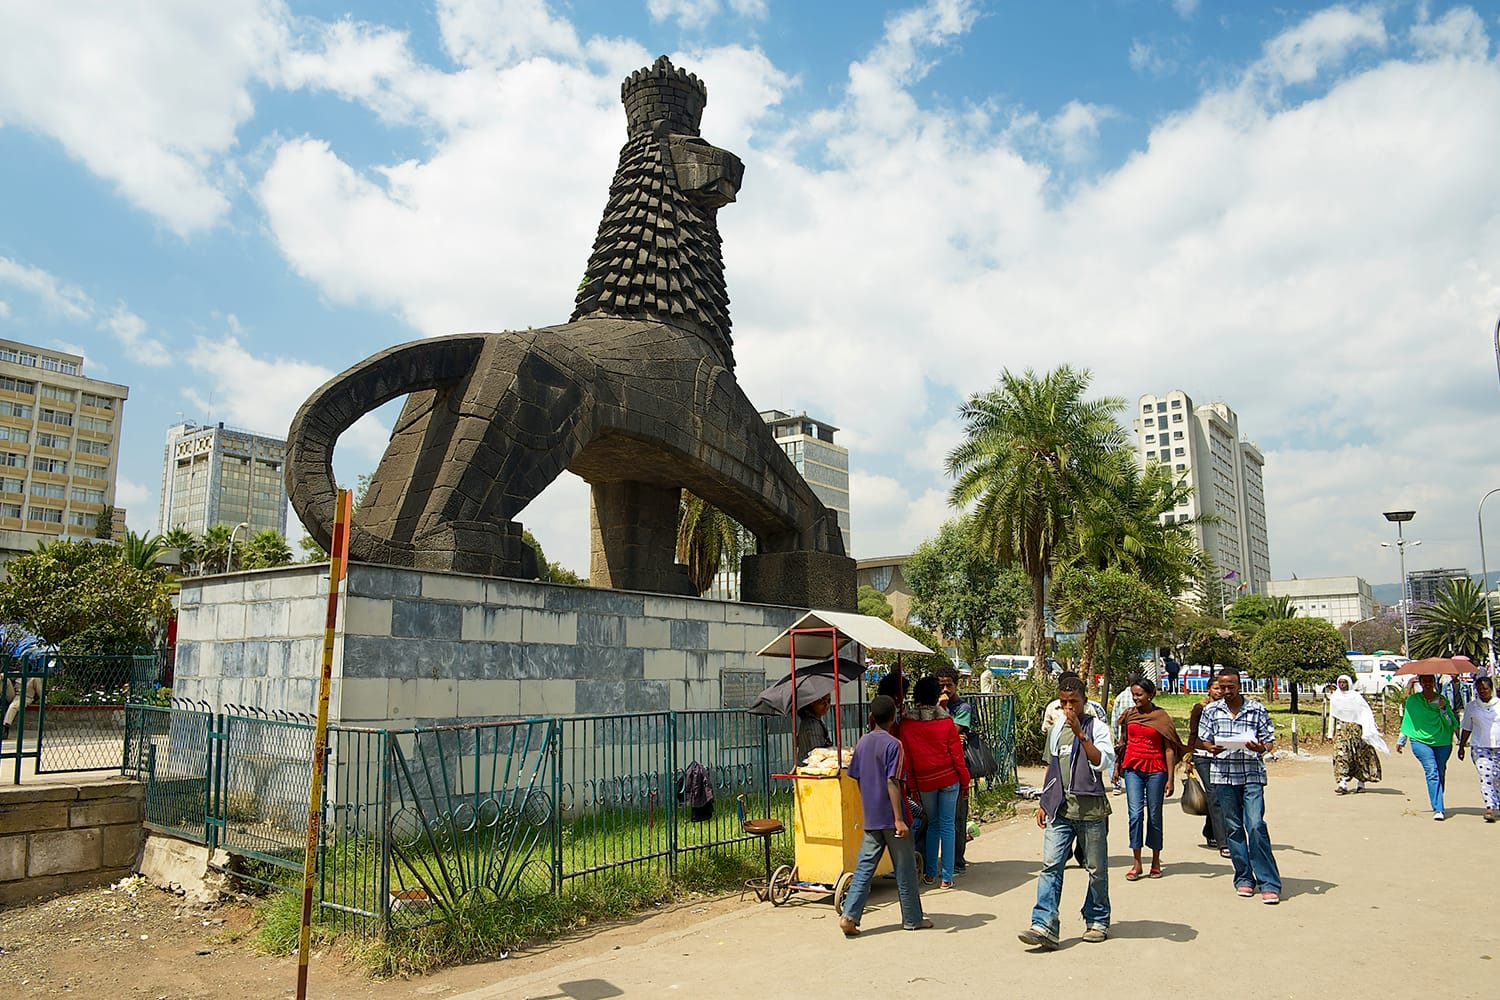 Unidentified people walk by the street next to the iconic statue of the Lion of Judah in Addis Ababa, Ethiopia.